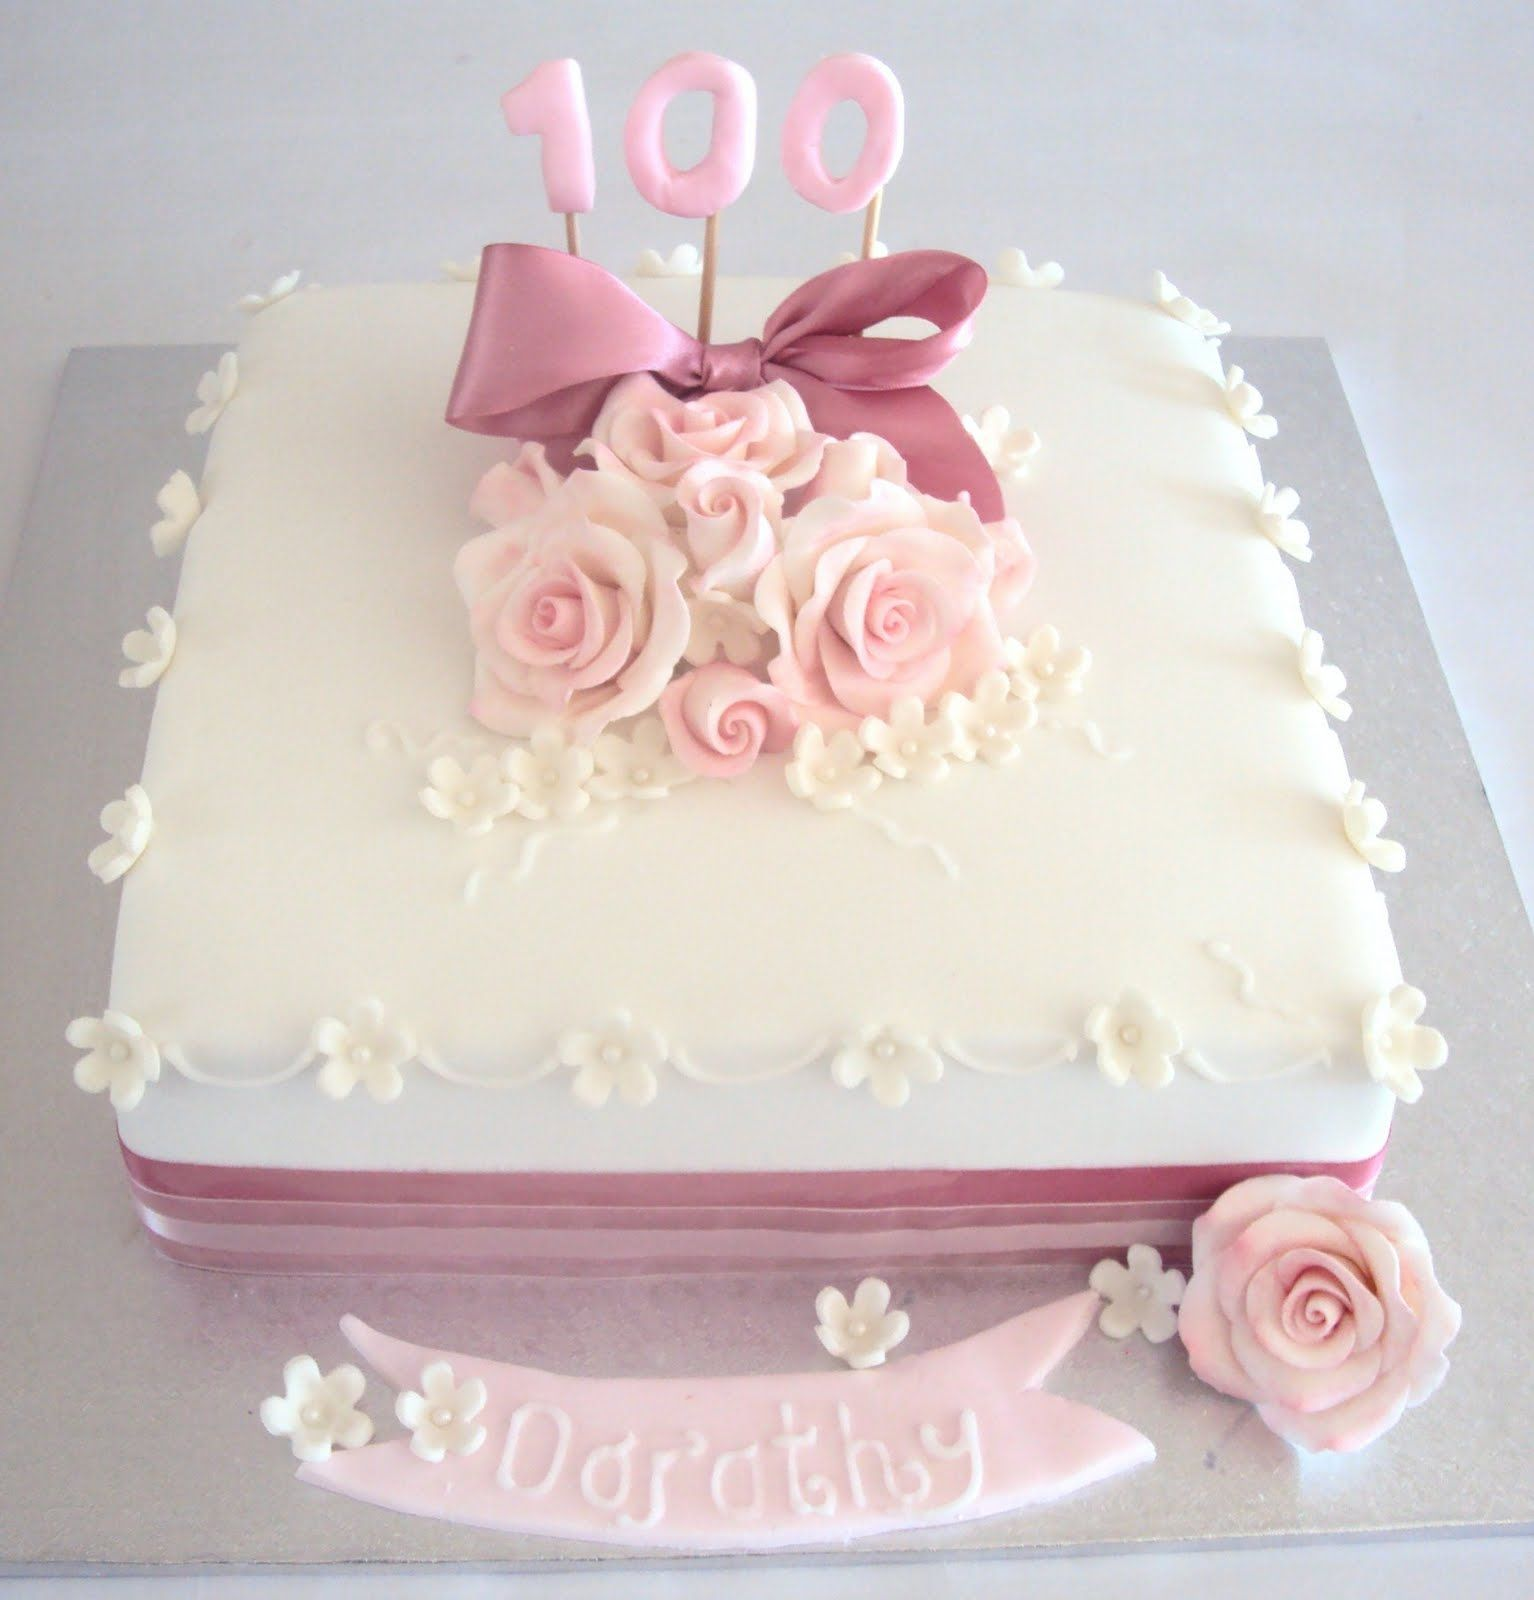 Image Result For Images 100th Birthday Cakes 100th Birthday